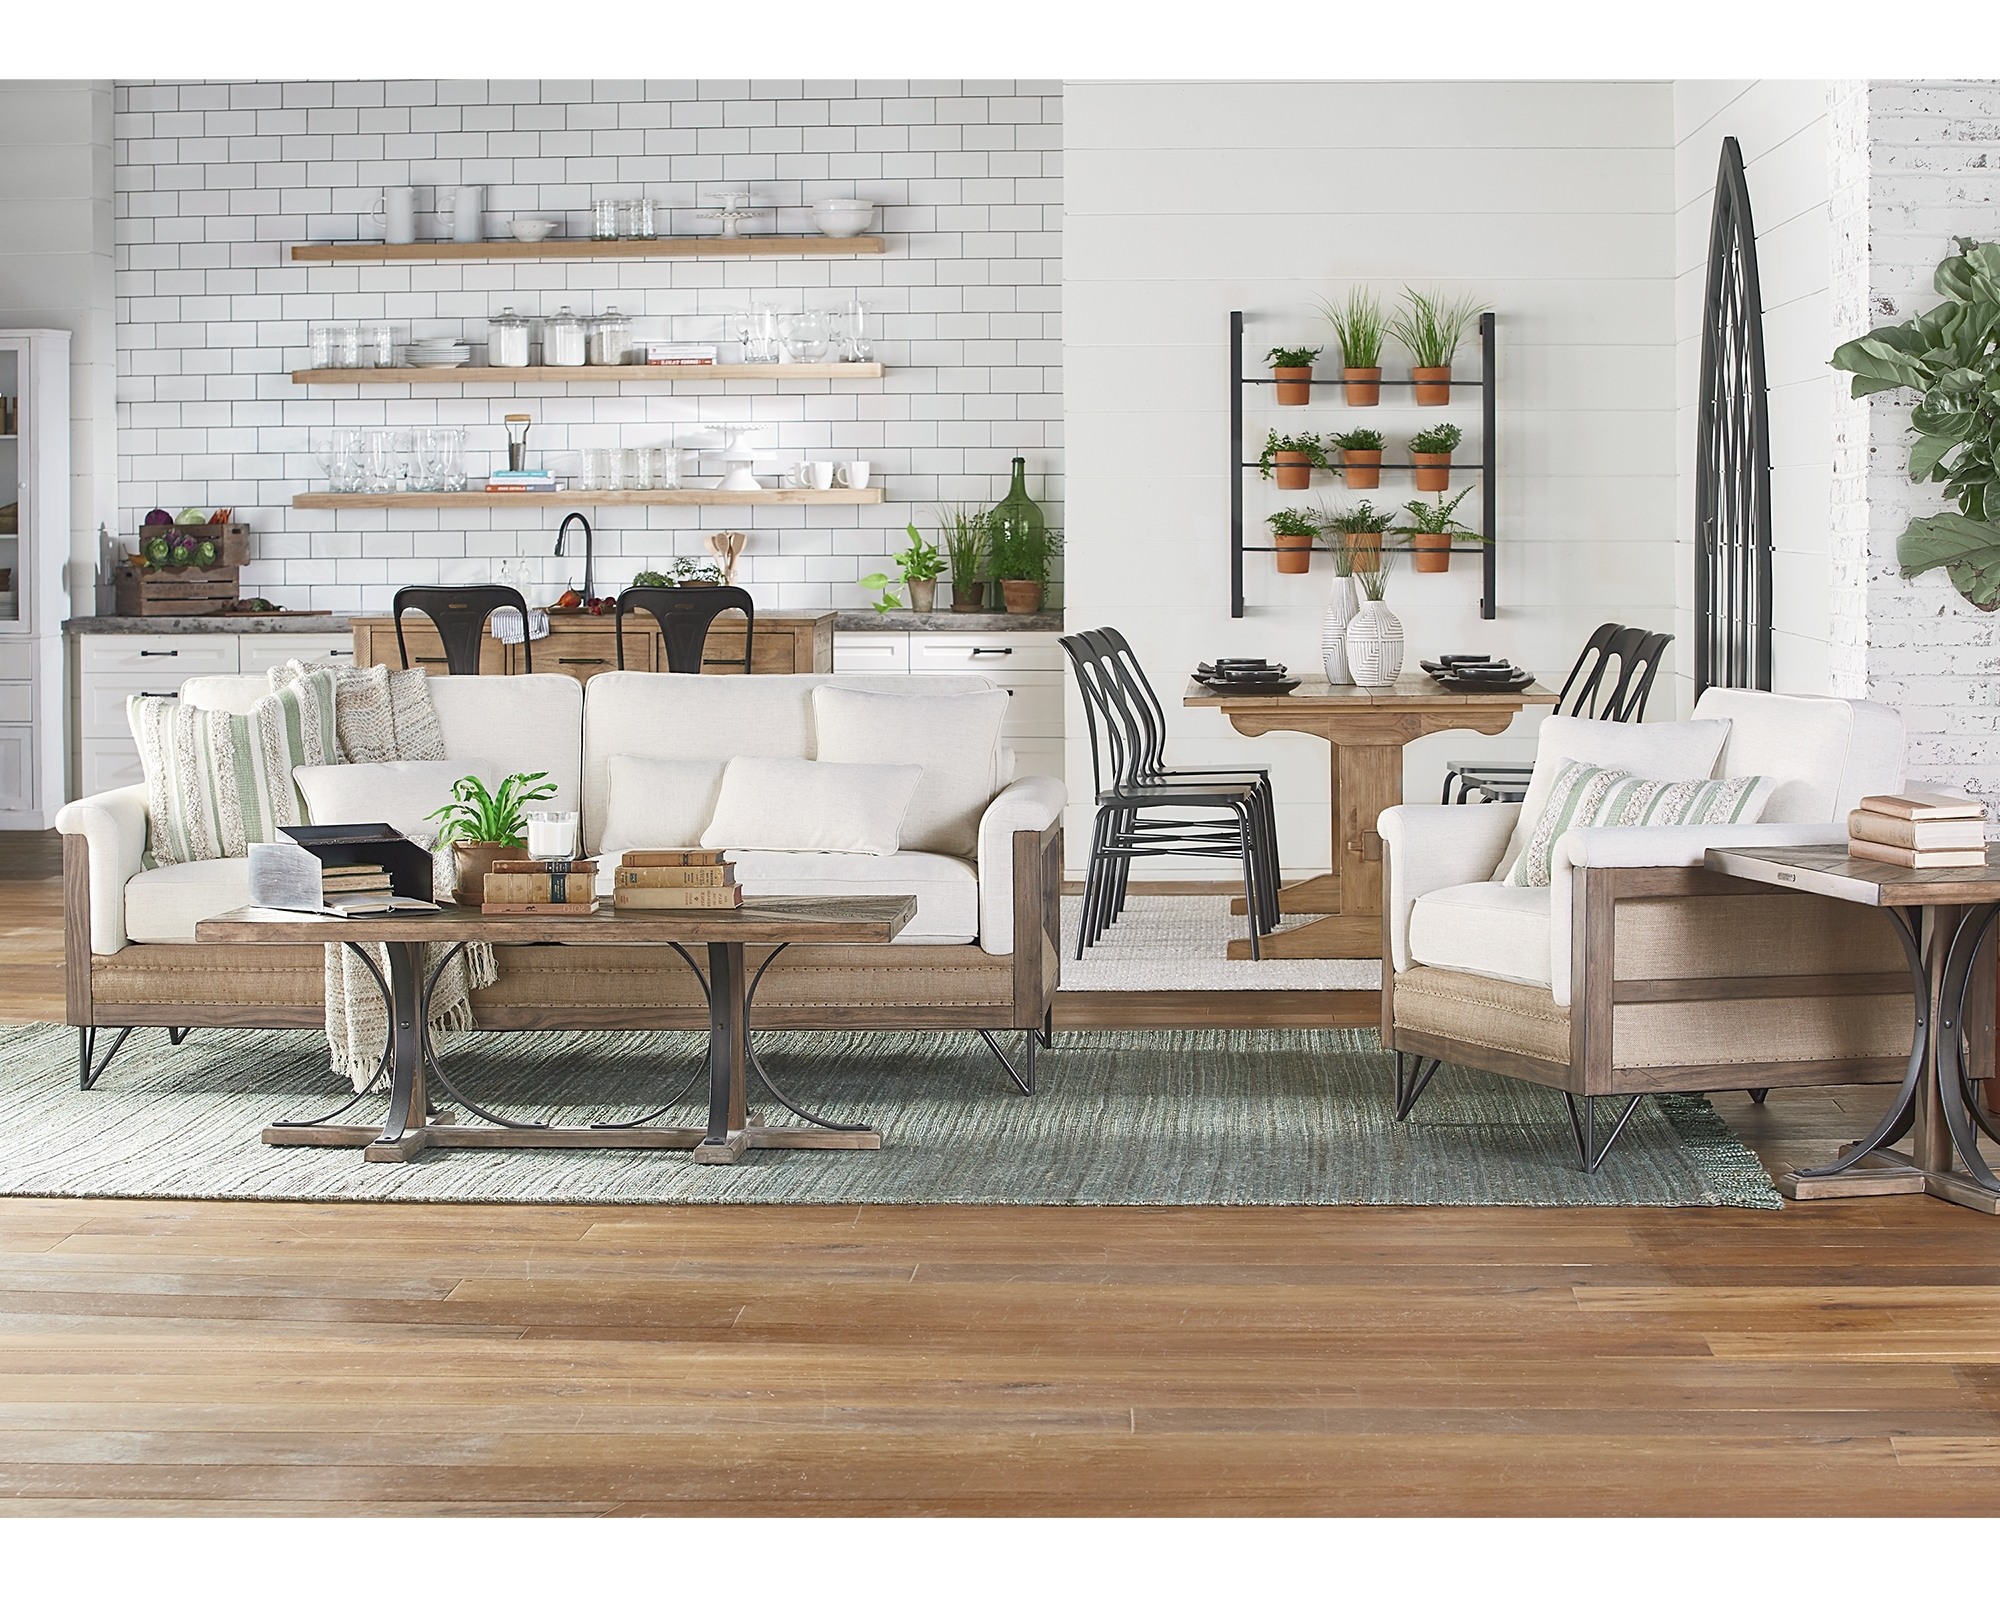 Magnolia Home Sawbuck Dining Tables Regarding Latest Iron Trestle End Table Magnolia Home Joanna Gaines (View 15 of 25)